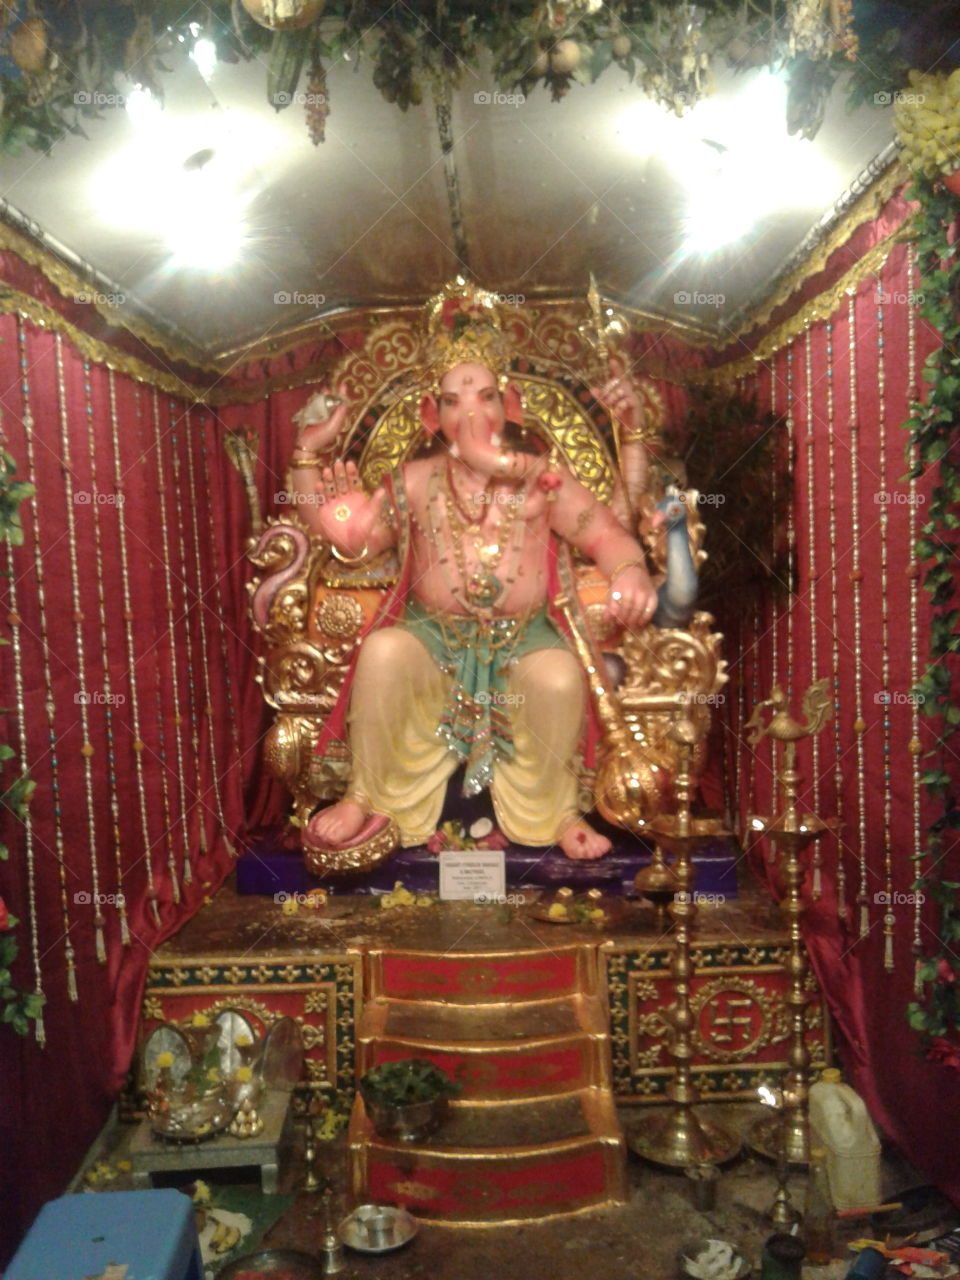 Lord ganesha statue during festival